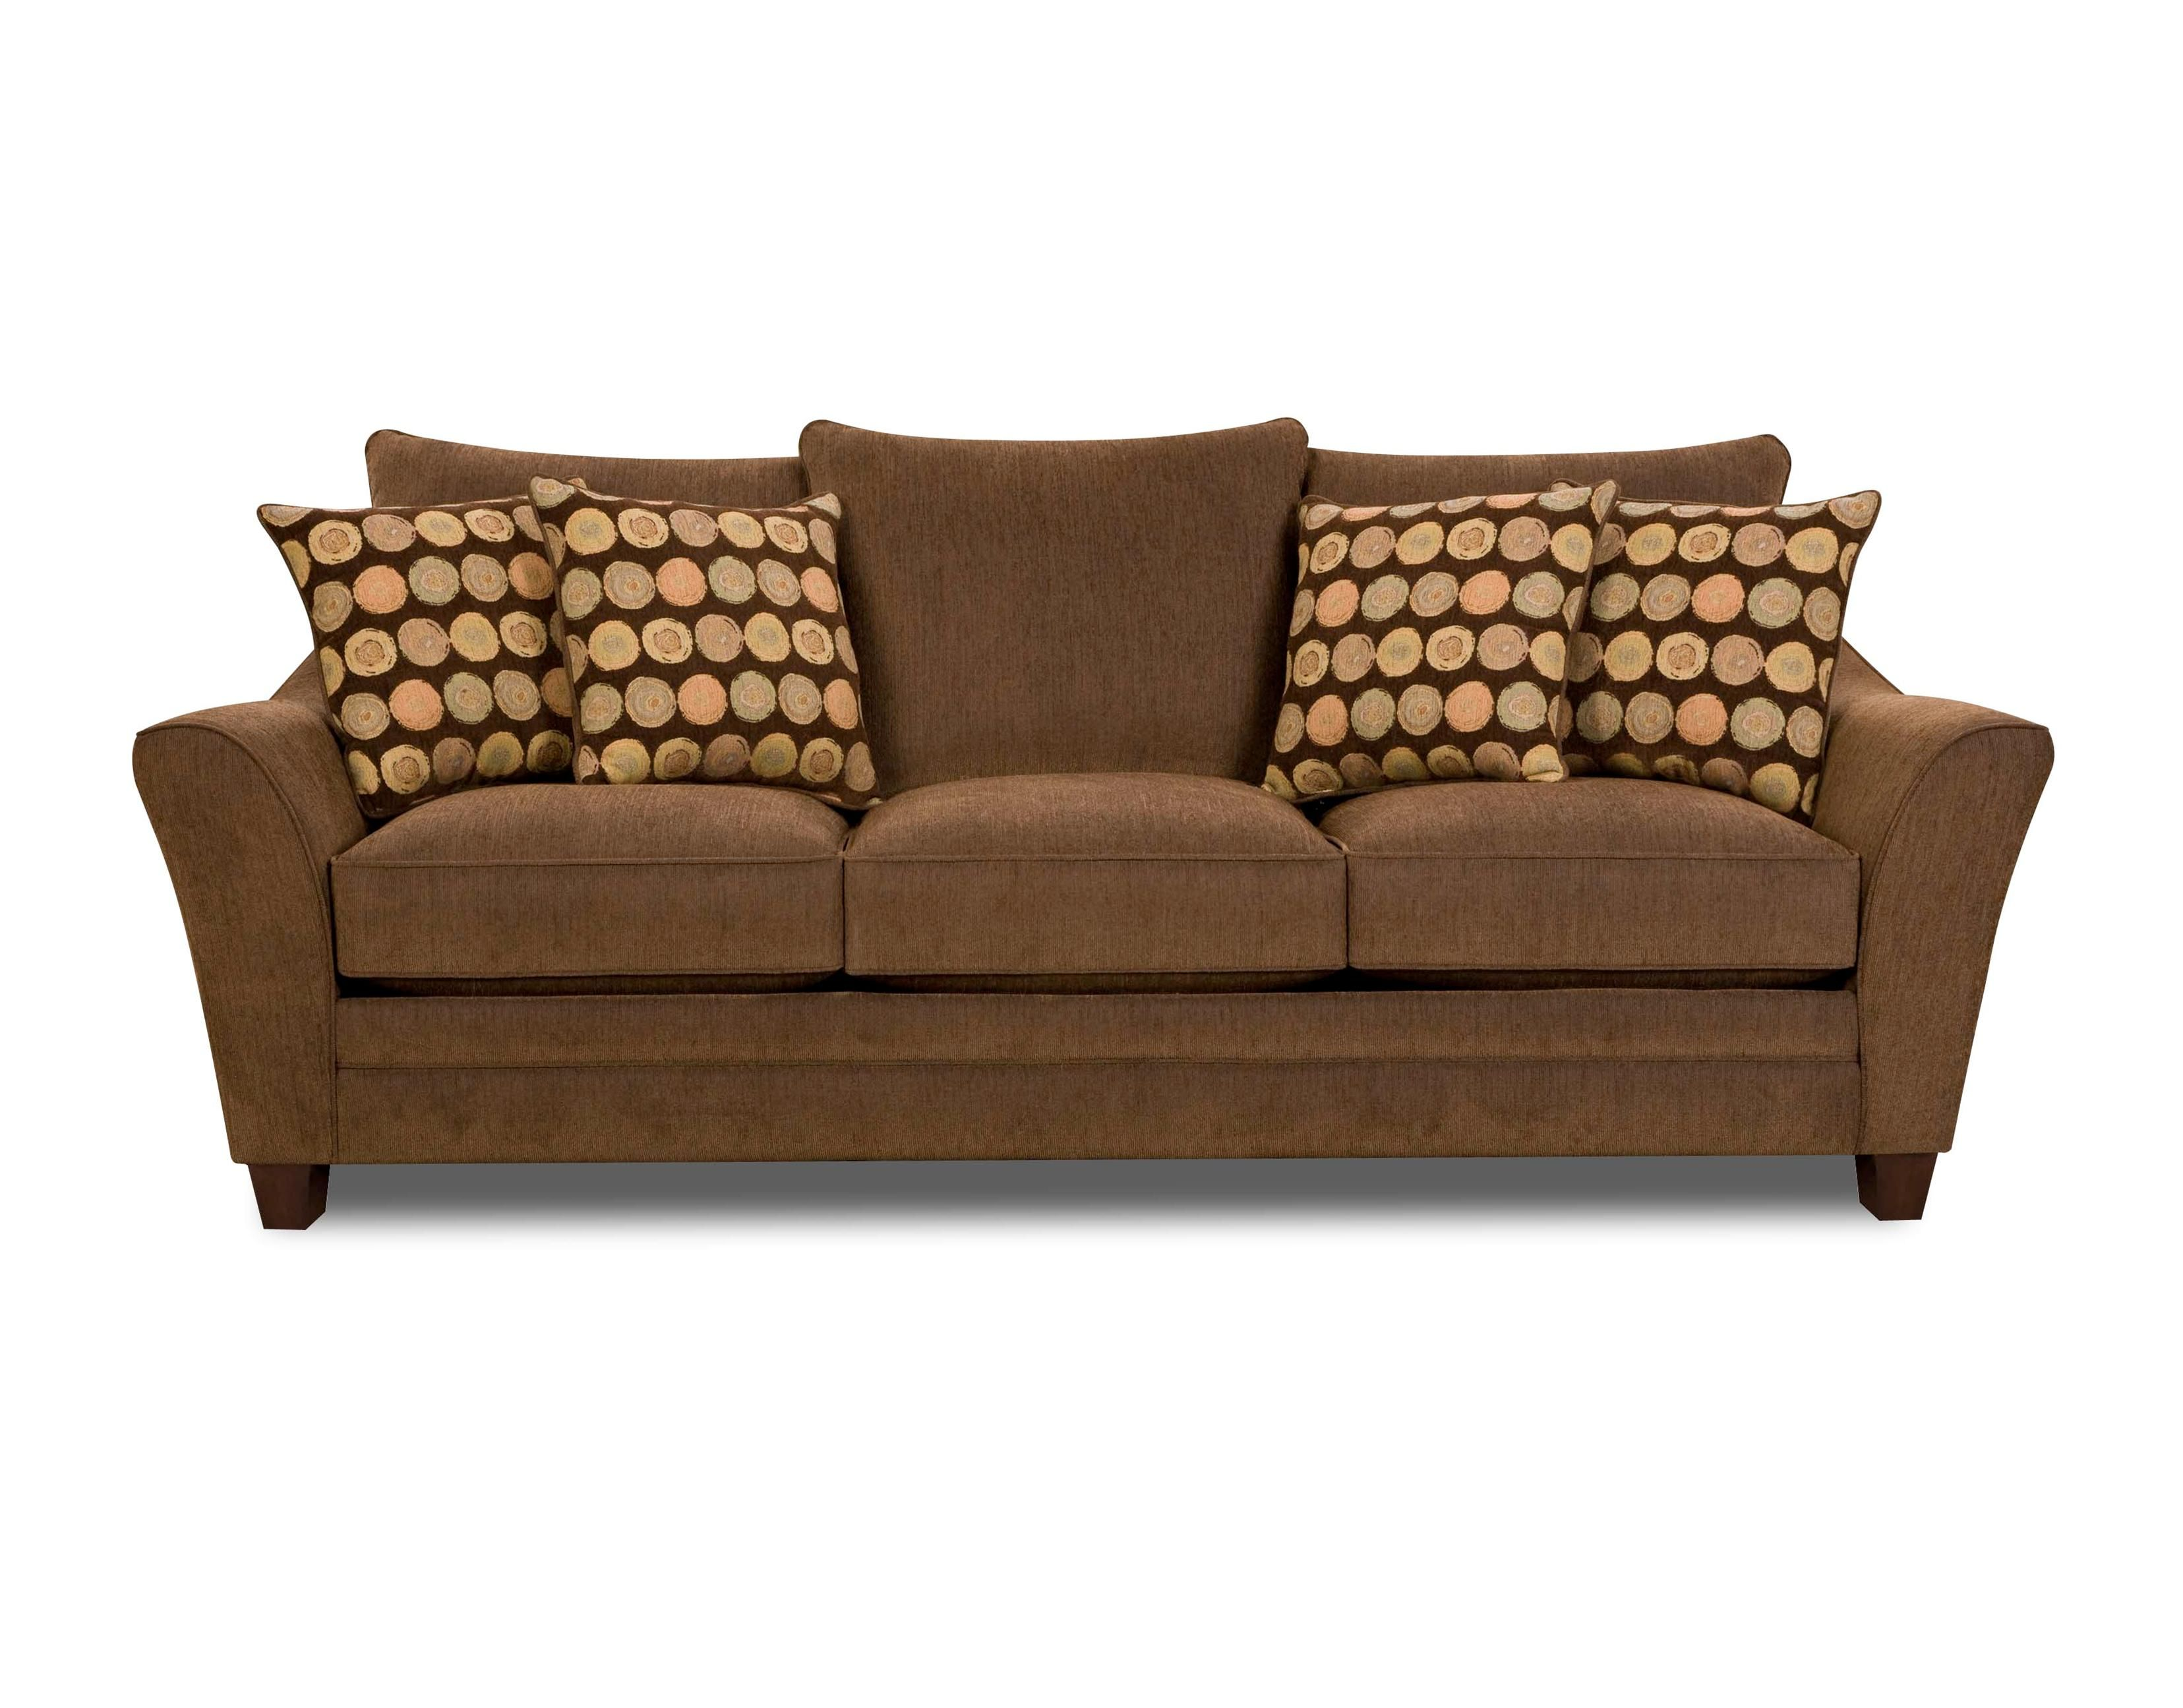 American Home Furniture Store Brilliant Review